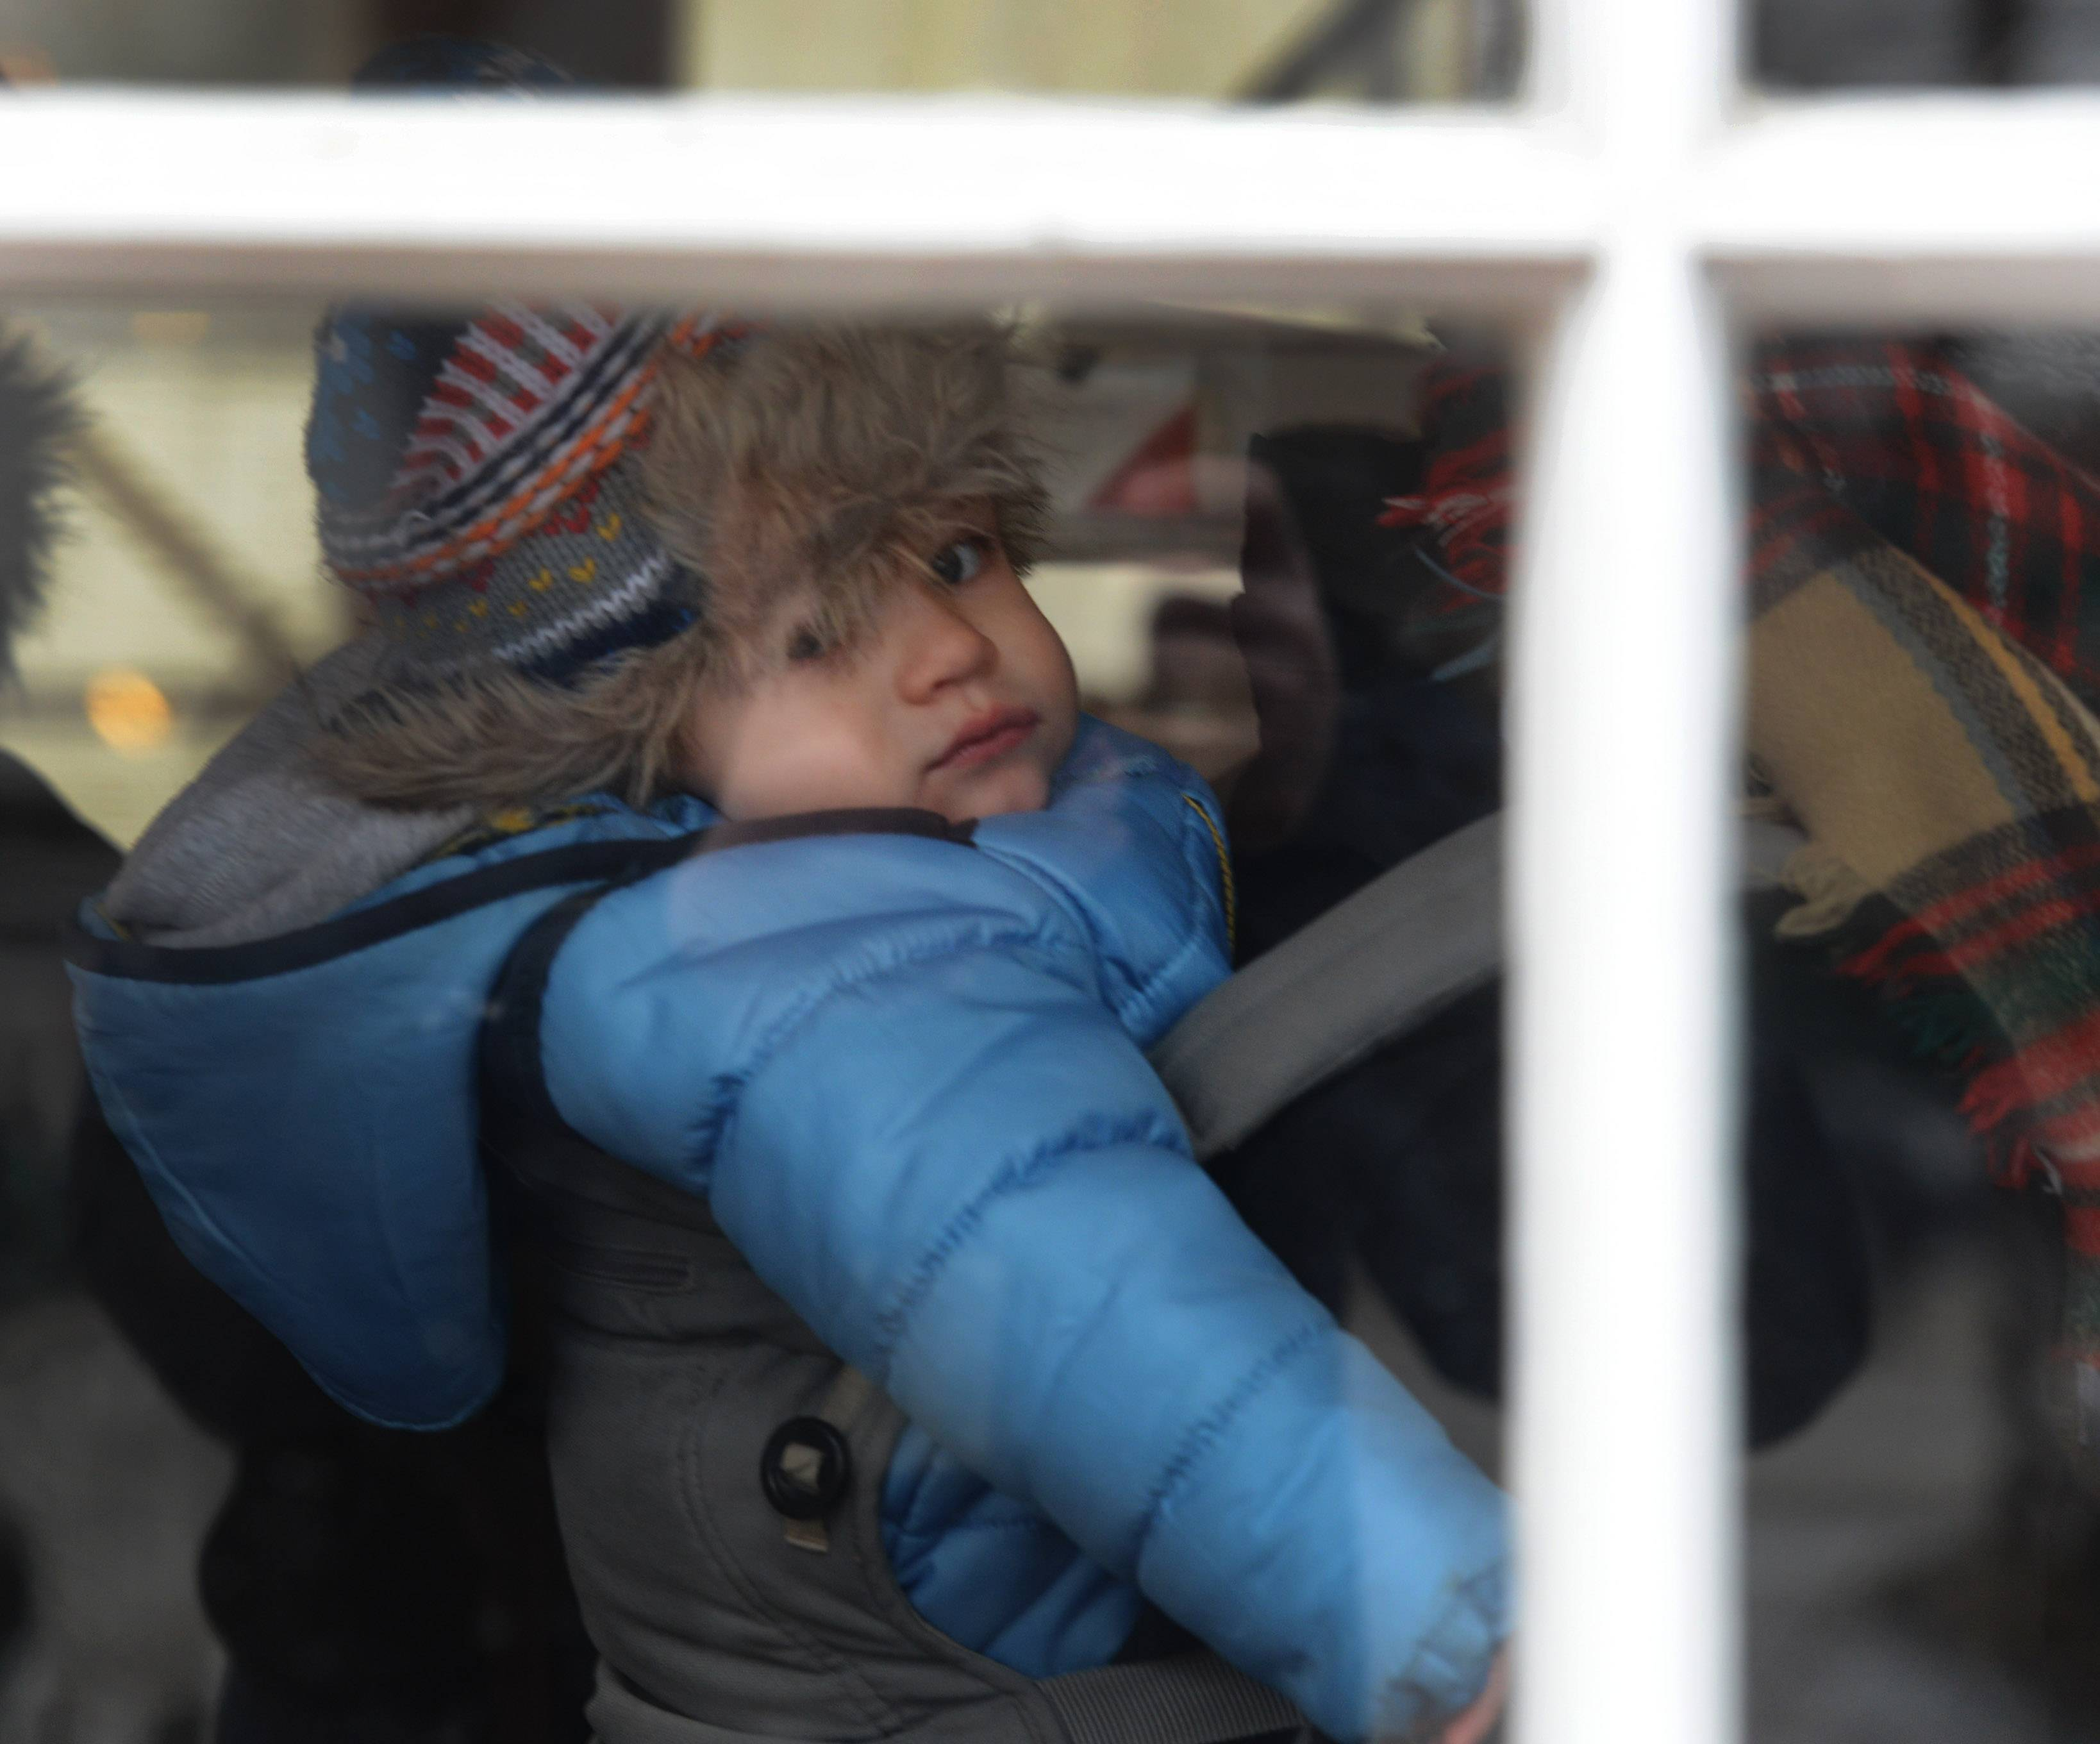 Viewed through the front window of the Covered Bridge Creamery, Keegan Walters, age 14 months, of Chicago is carried on the back of his mom, Sheila, who grew up in Arlington Heights, during the Long Grove Cocoa Crawl Saturday.